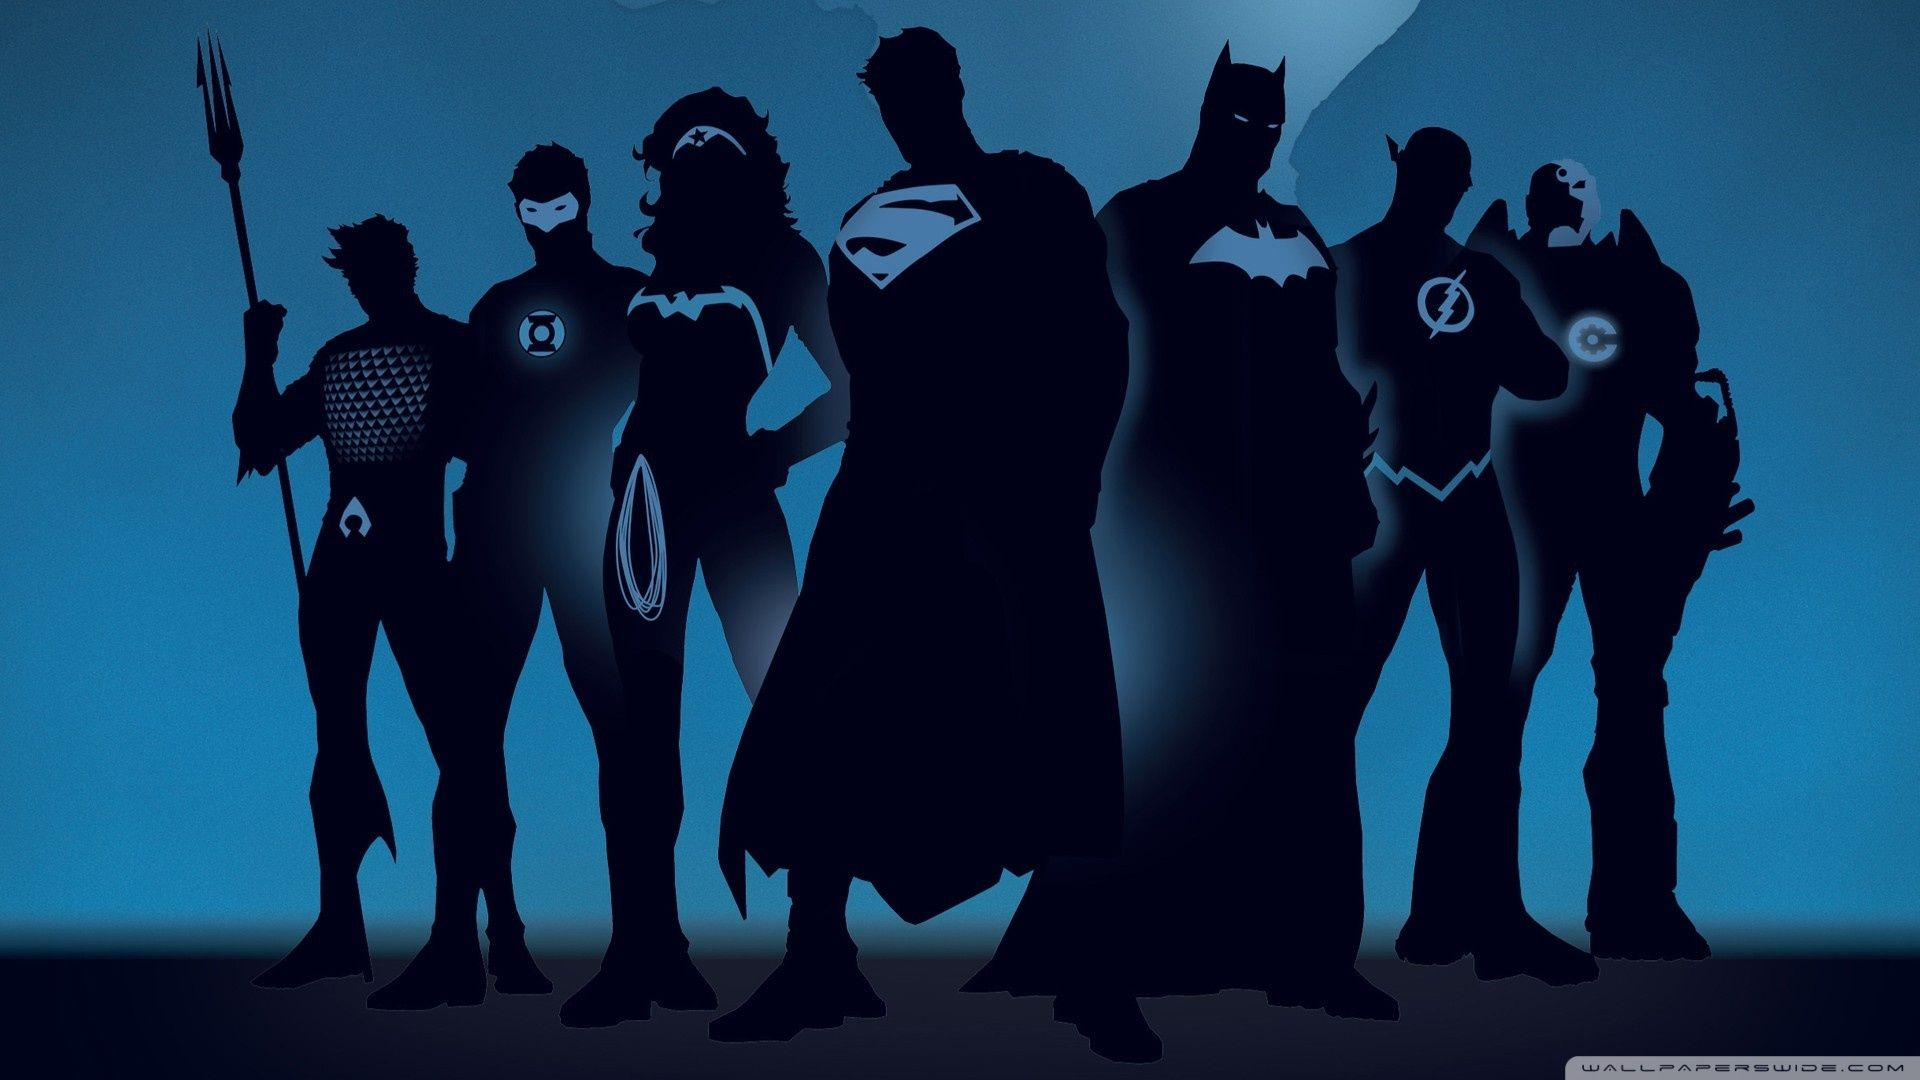 Batman Wallpaper 1920 1080 Hd Wallpaper Superhero Silhouette Dc Comics Wallpaper Justice League Characters